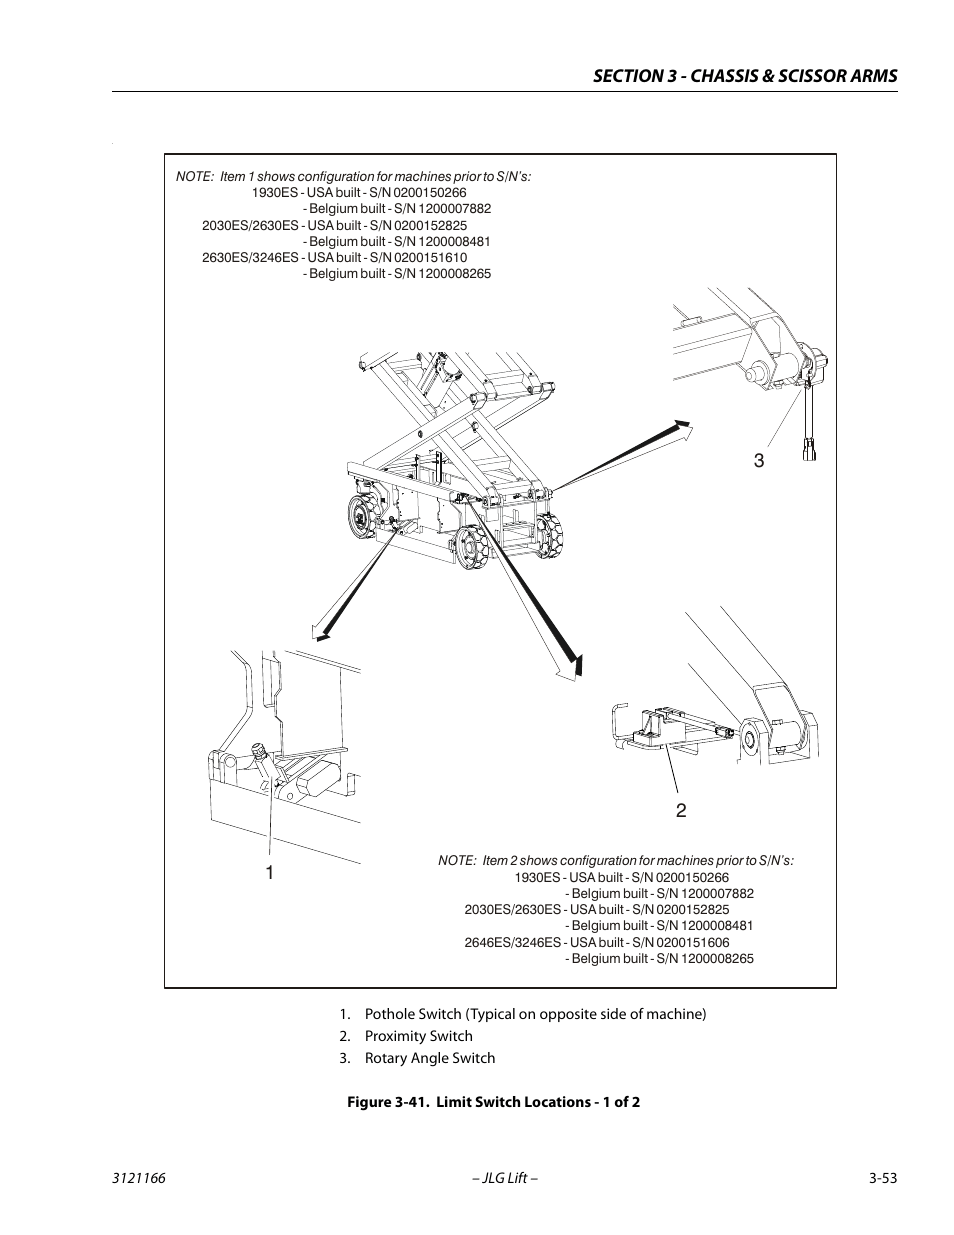 medium resolution of limit switch locations 1 of 2 53 jlg 3246es service manual user manual page 89 222